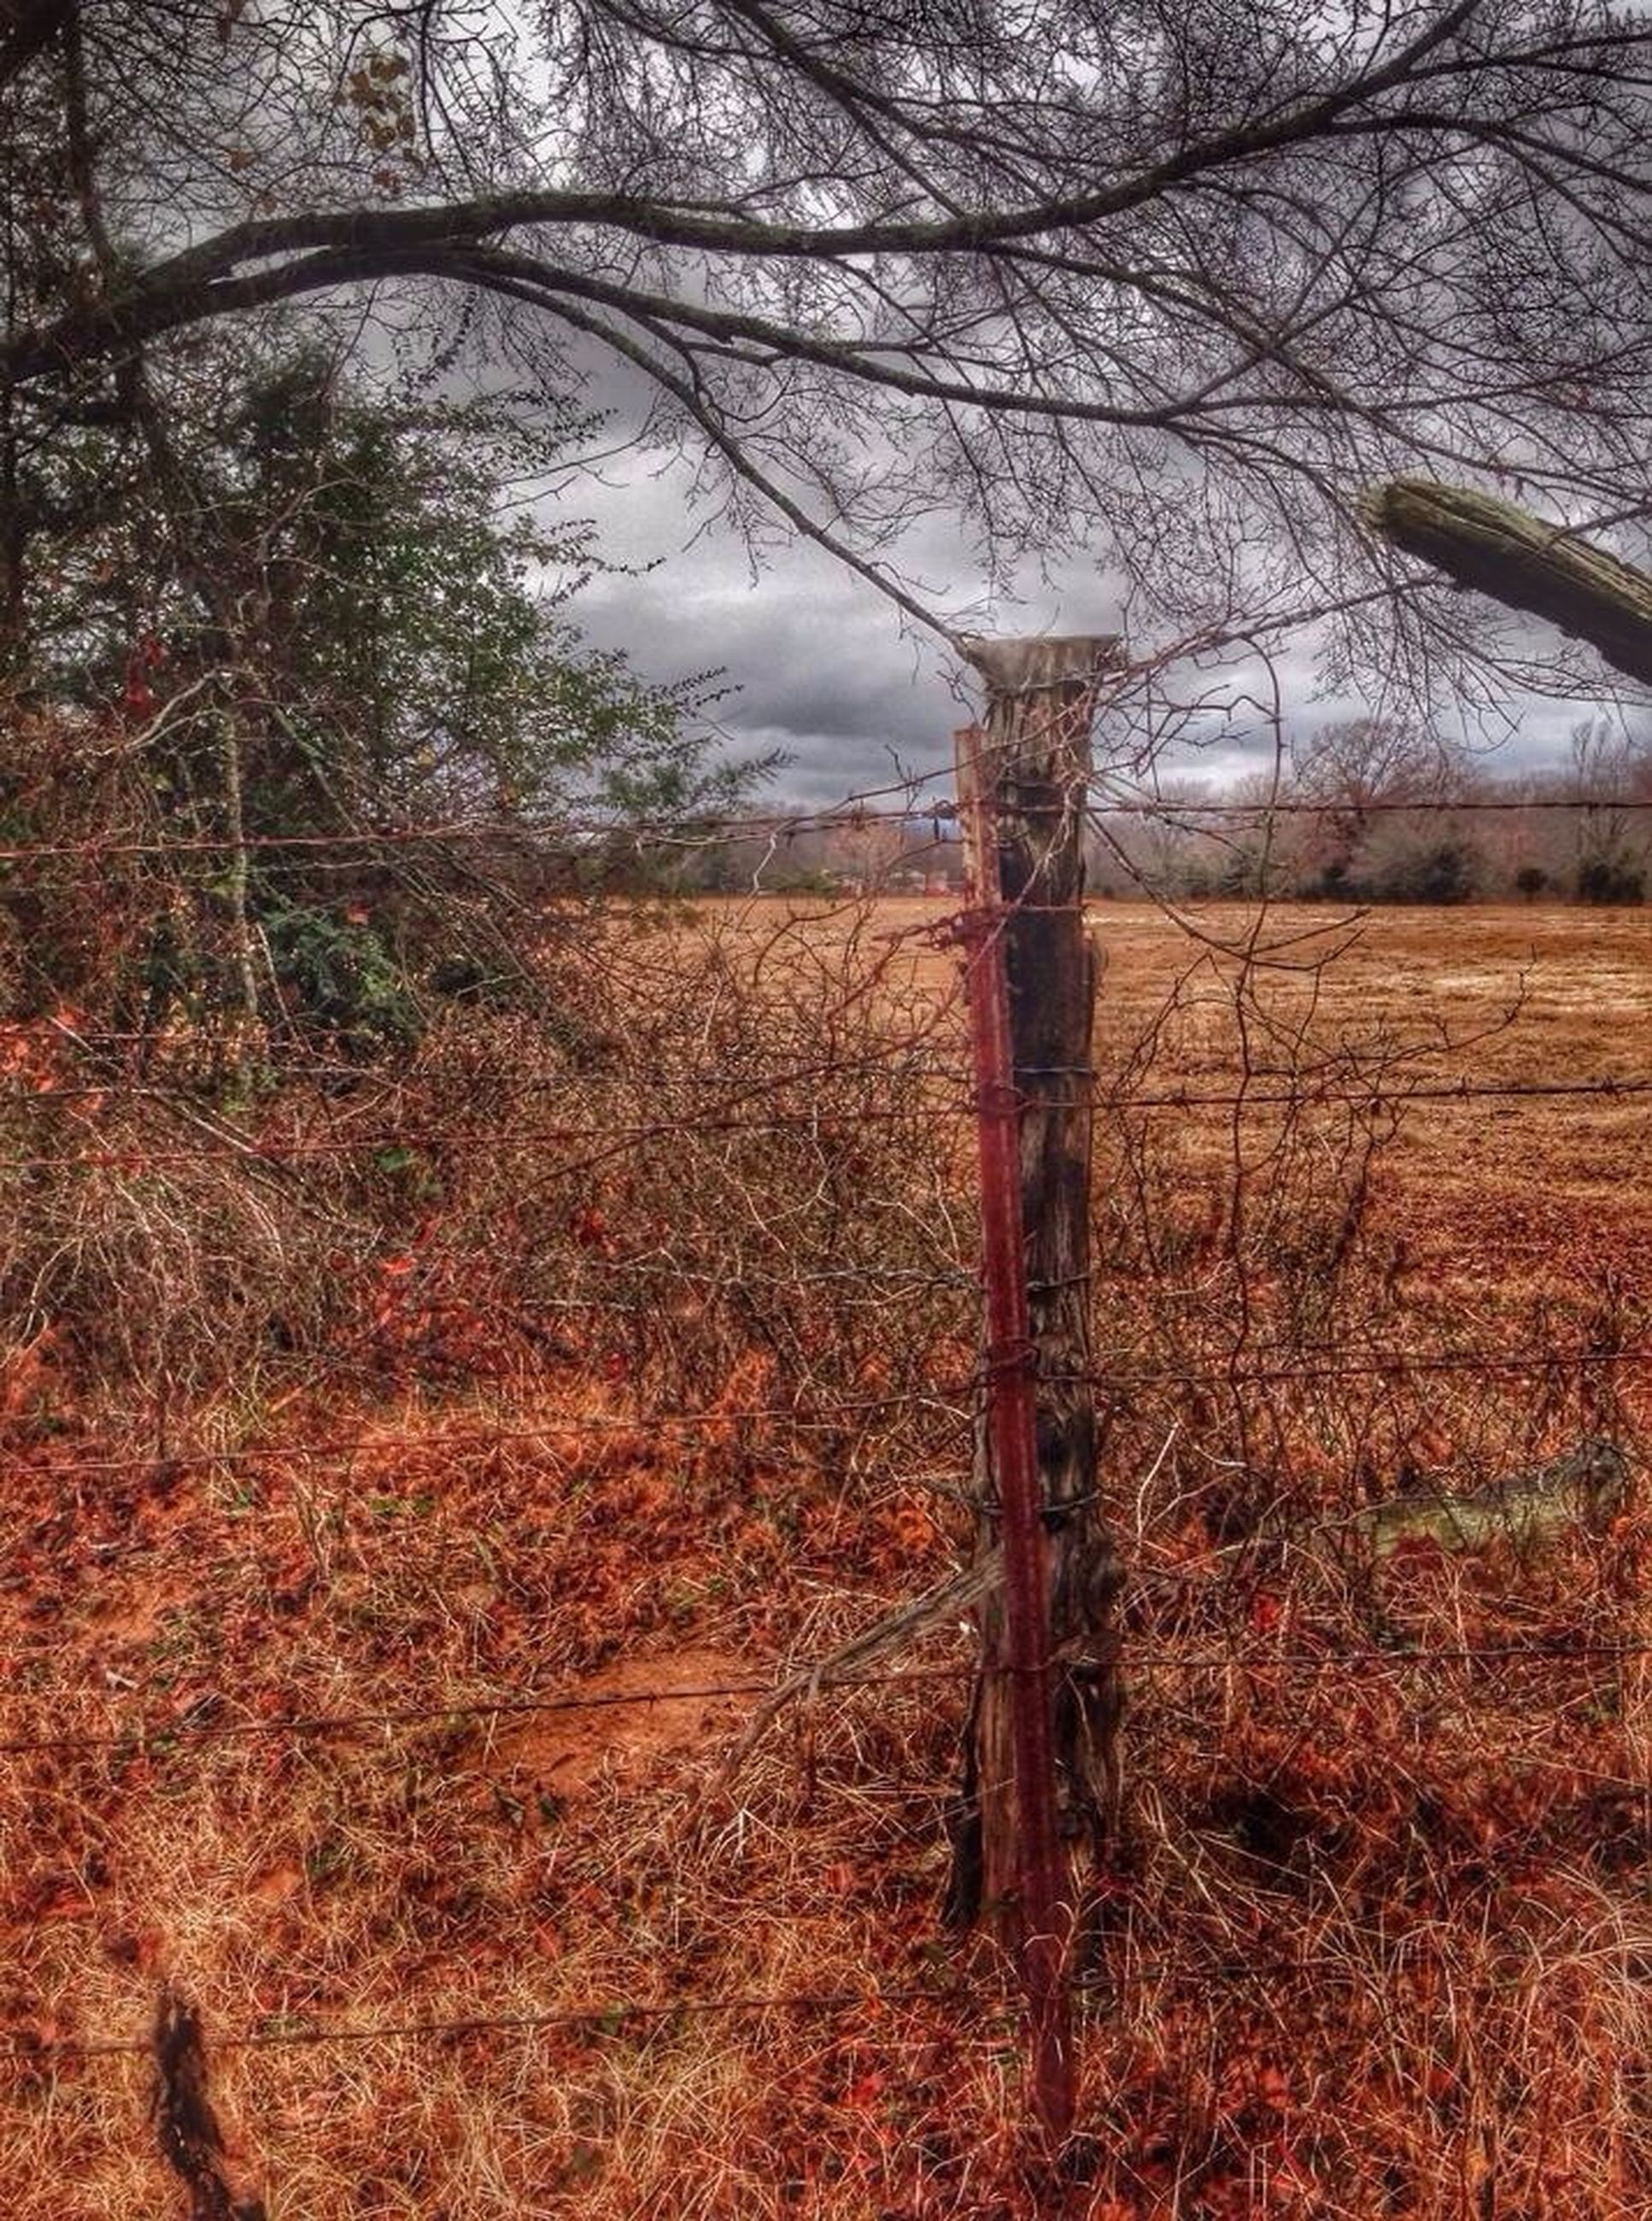 field, tree, tranquility, landscape, rural scene, tranquil scene, growth, sky, nature, bare tree, agriculture, dry, scenics, grass, beauty in nature, autumn, plant, day, branch, outdoors